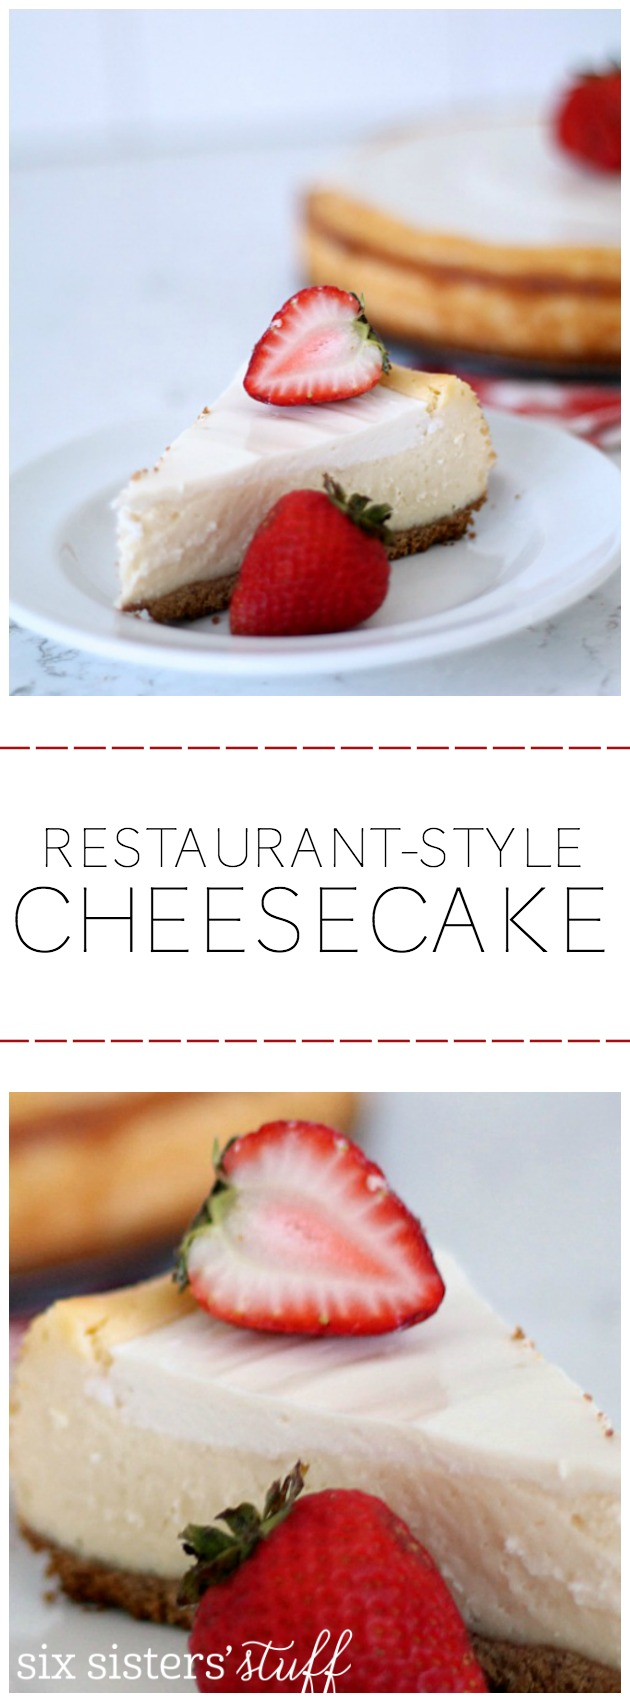 Restaurant Style Lion House Cheesecake from SixSistersStuff.com